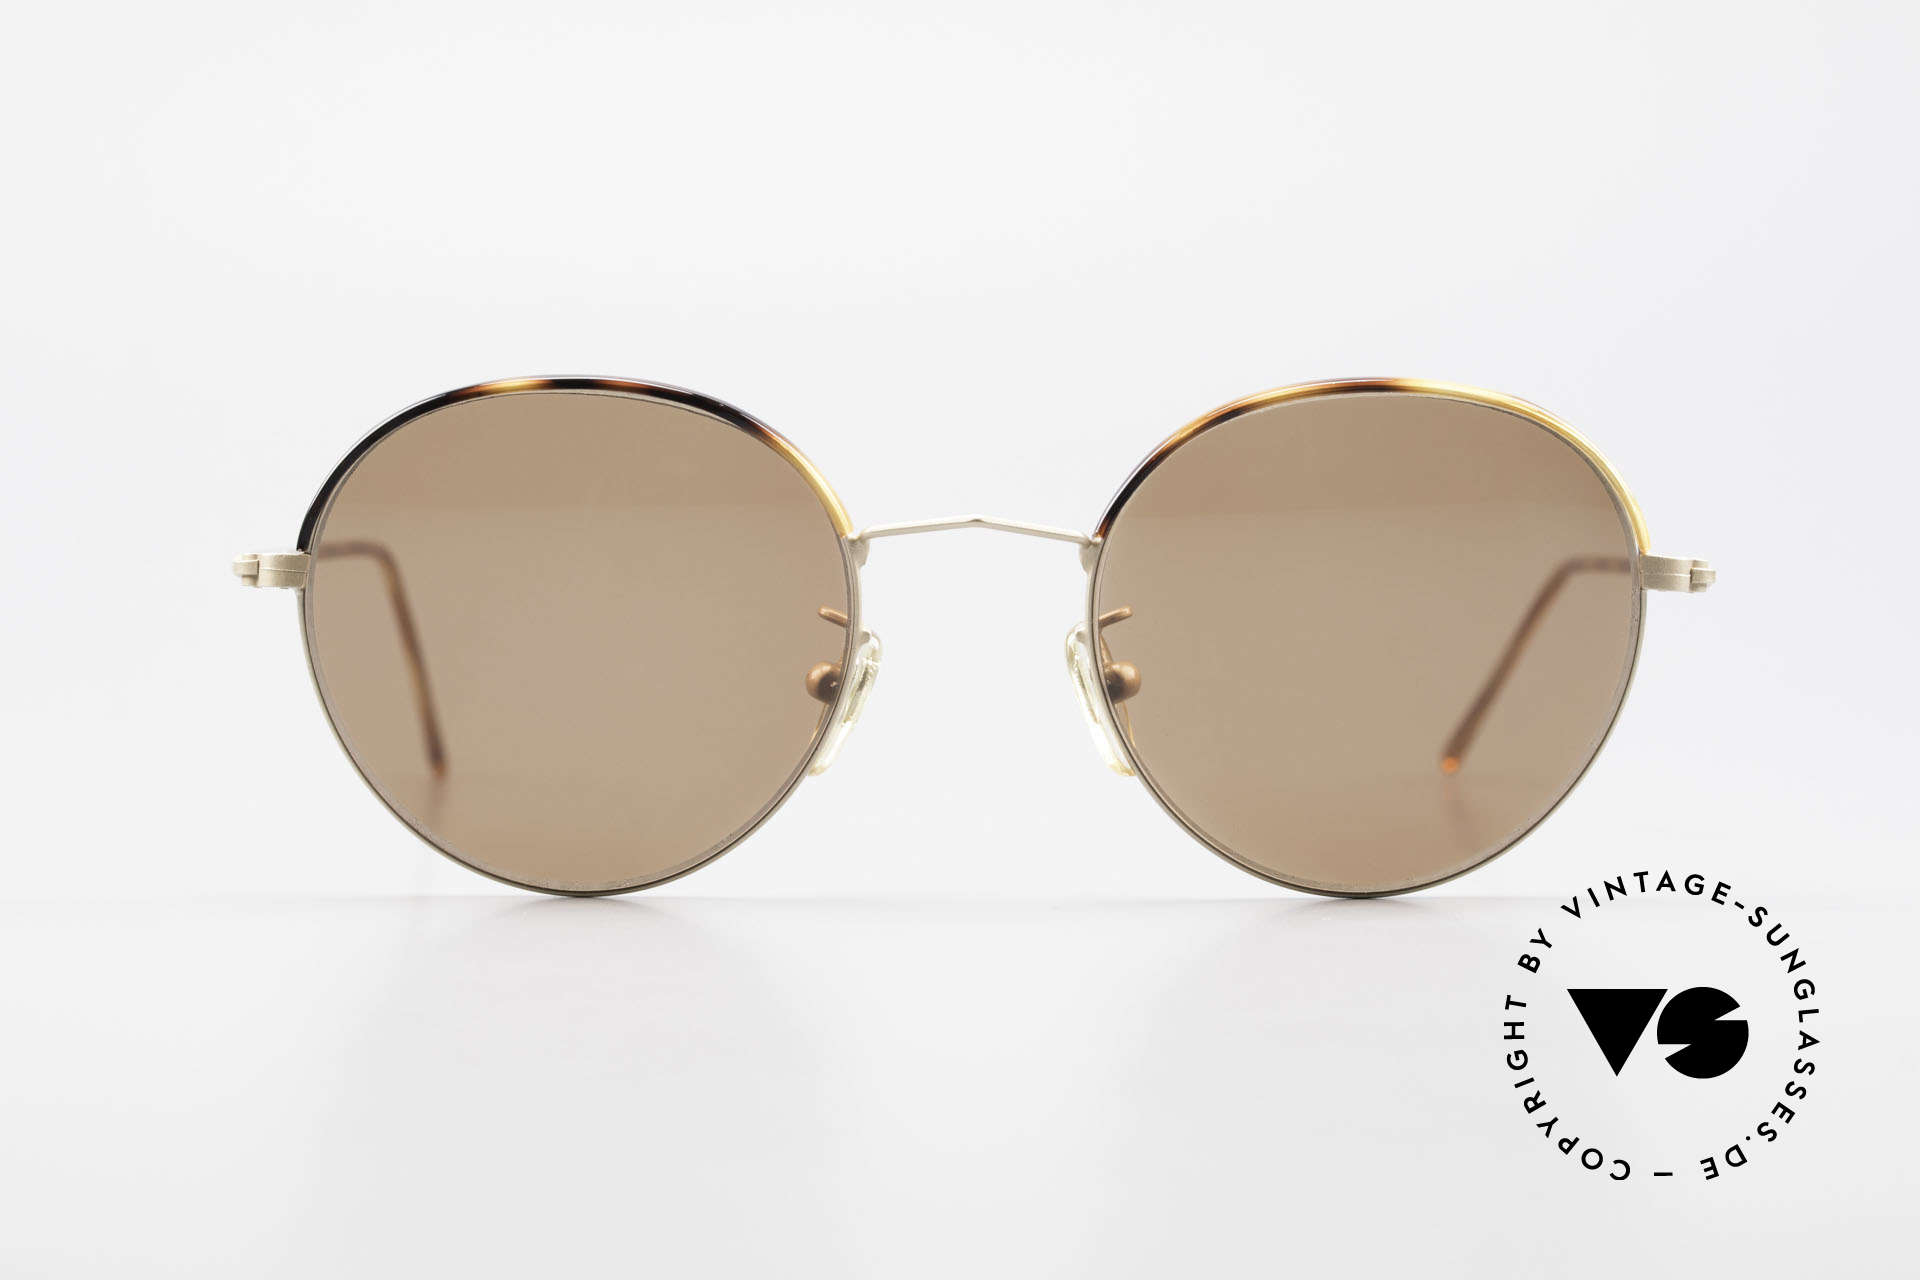 Cutler And Gross 0391 Round Shades Windsor Rings, classic, timeless UNDERSTATEMENT luxury sunglasses, Made for Men and Women